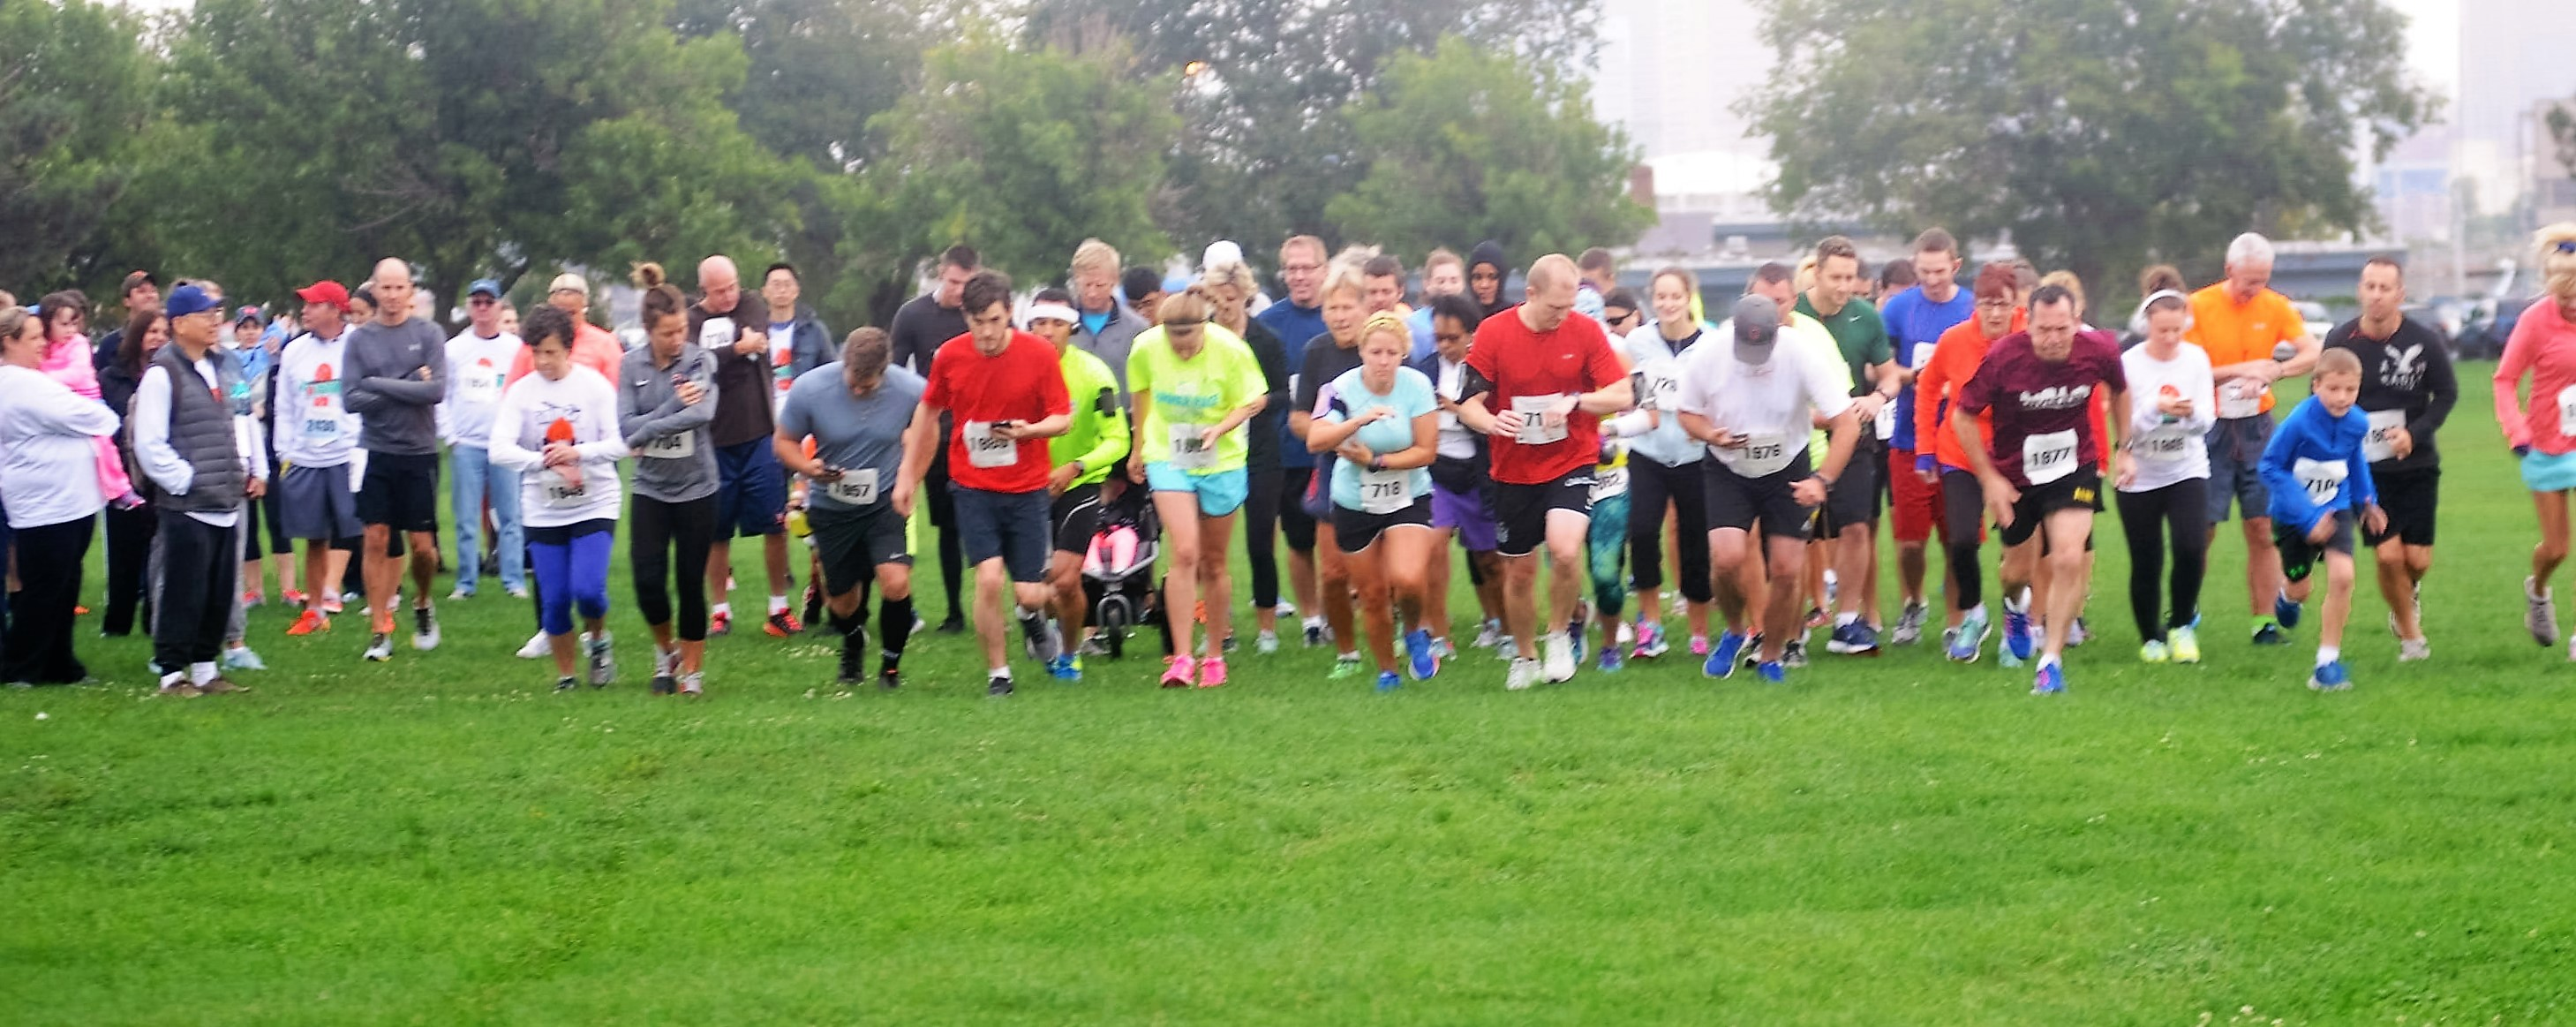 Great participation at the Smile & Dash run benefiting The Salvation Army